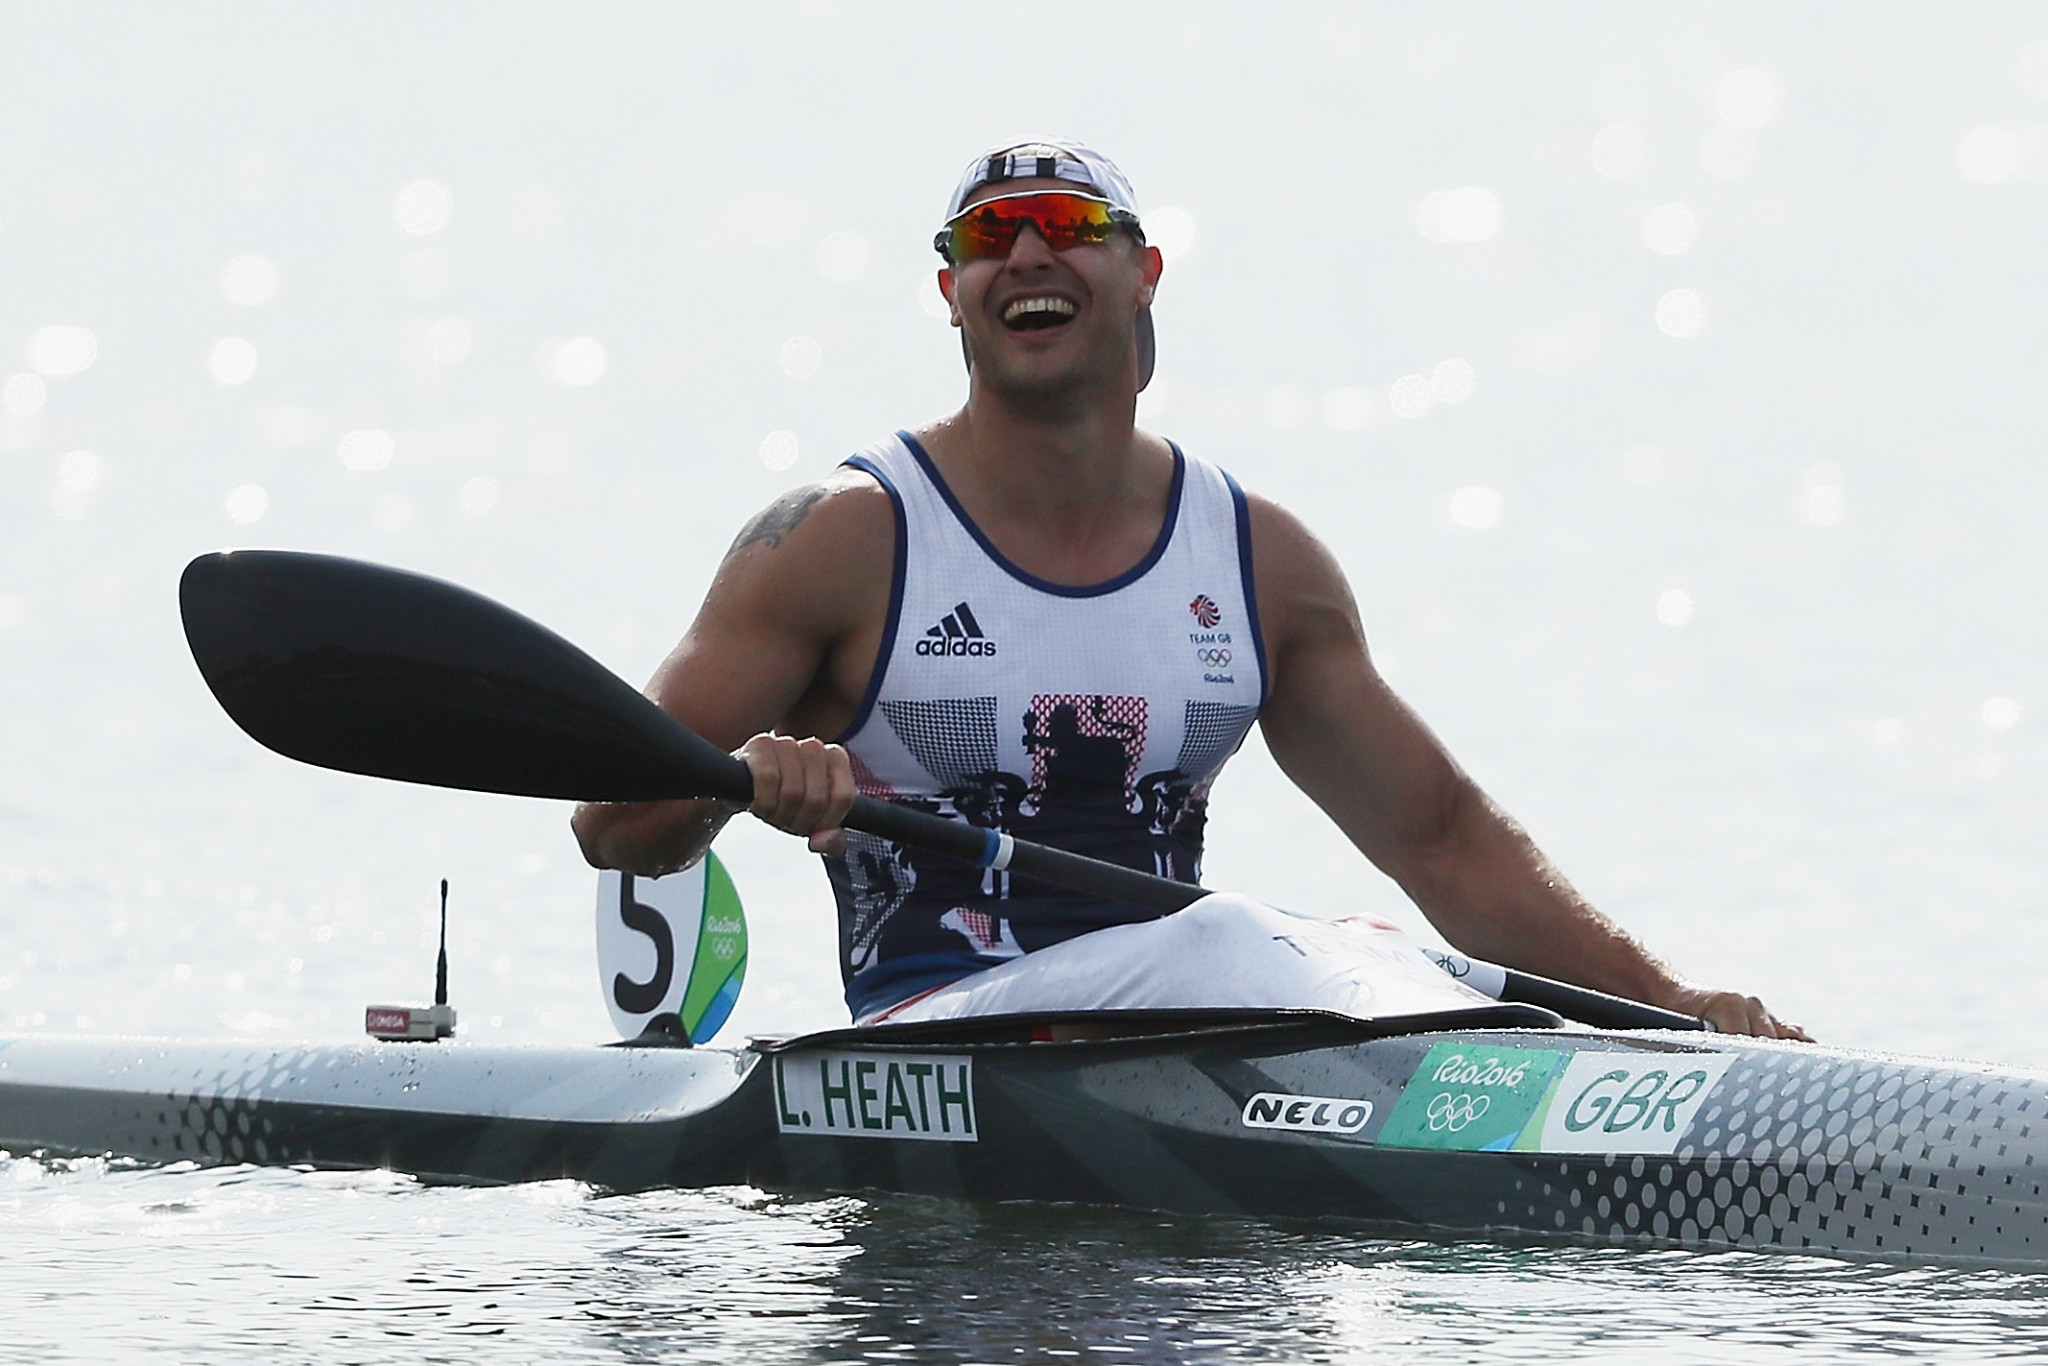 Rio 2016 champion Liam Heath heads five British canoeing selections for Tokyo 2020 ©Getty Images